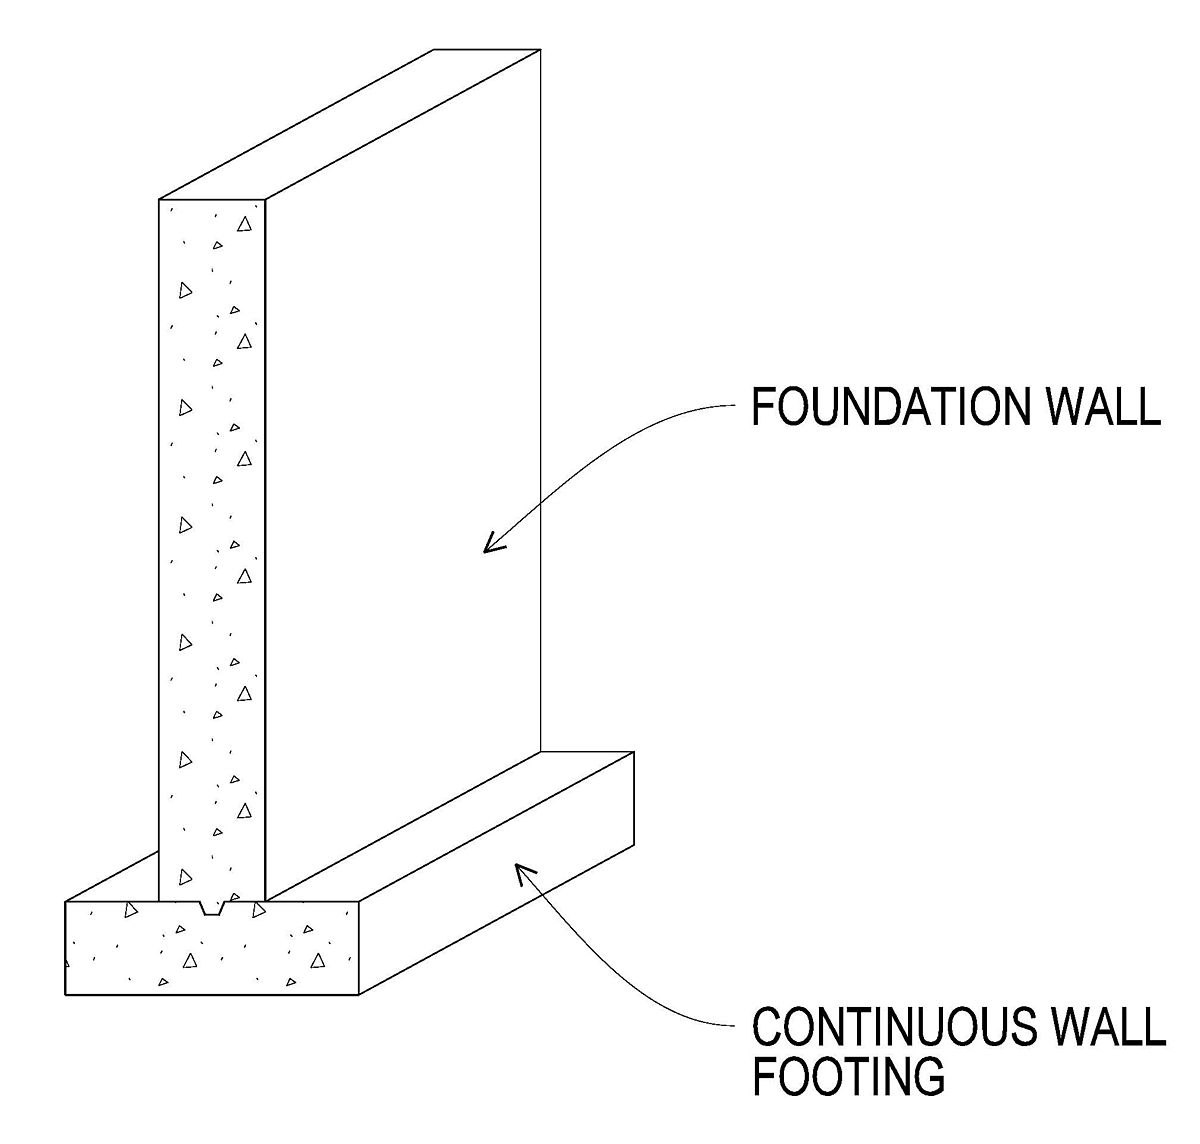 Wall Footing Wikipedia